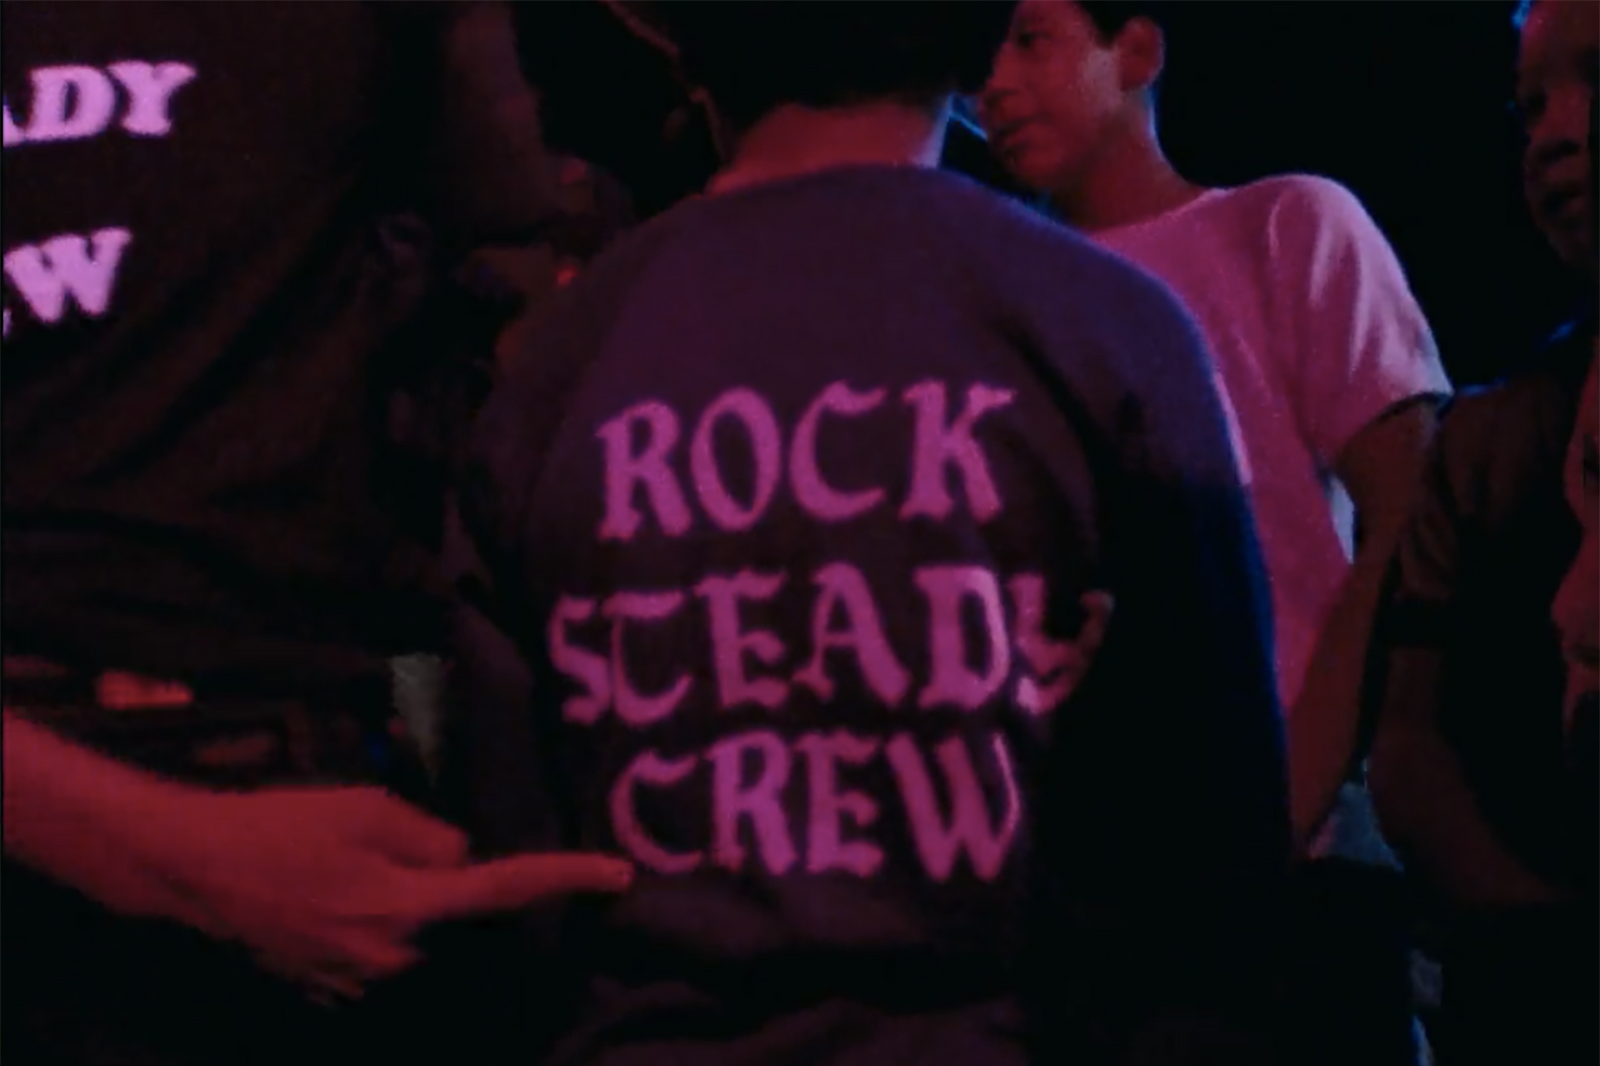 rock steady crew dynamic rockers NYC gang tees Kanye West The Life of Pablo